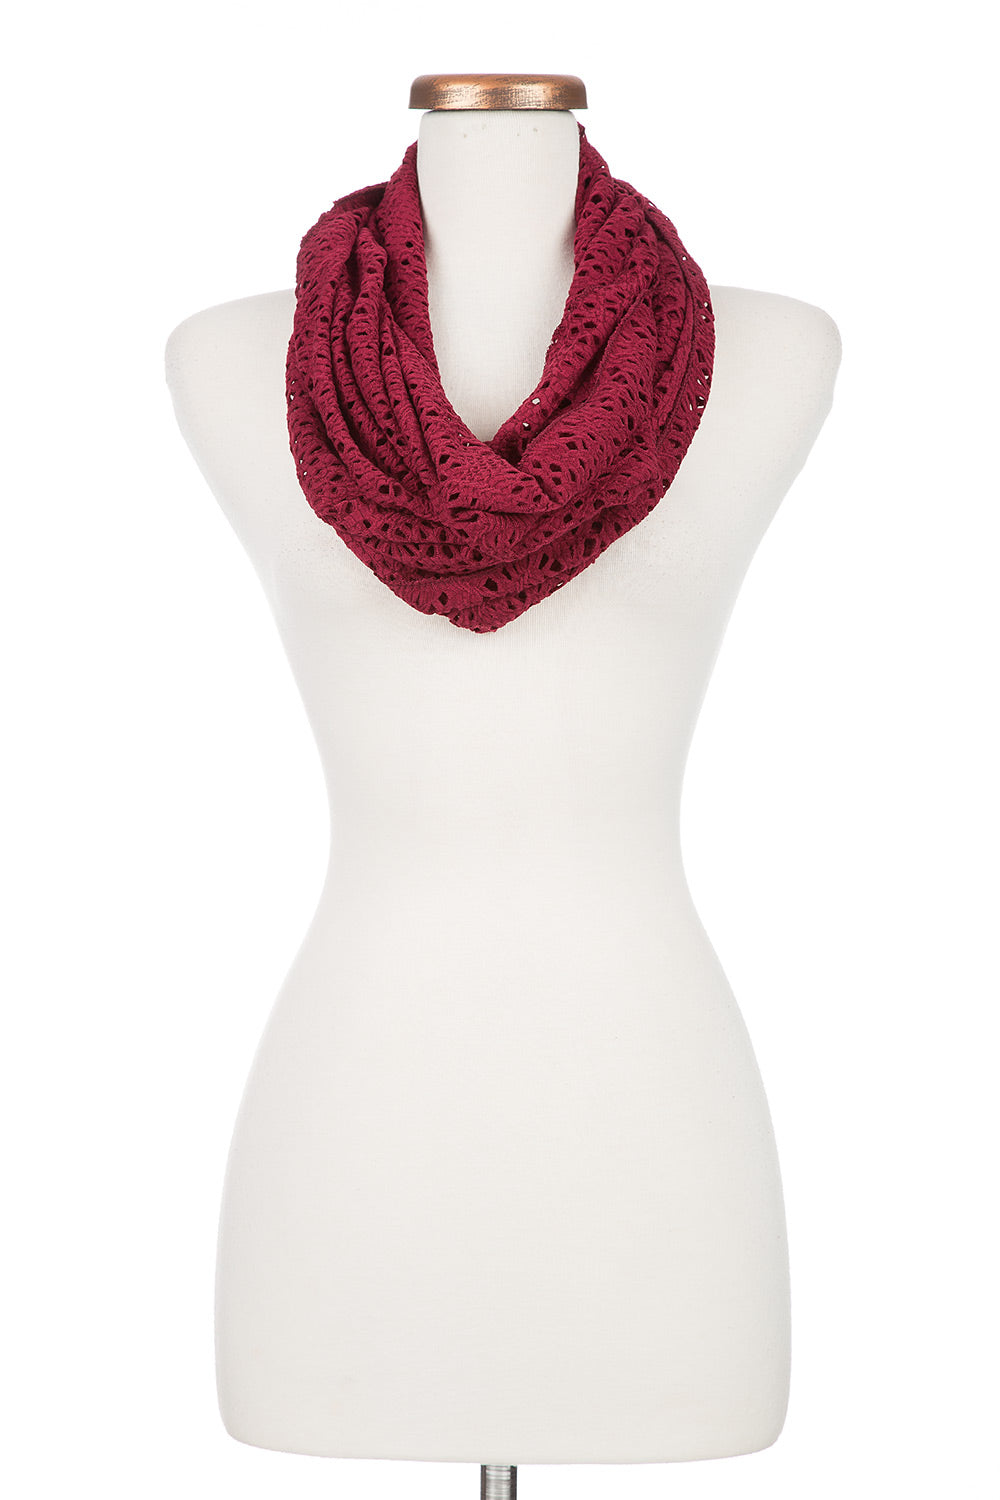 Type 3 Cranberry Cutout Infinity Scarf